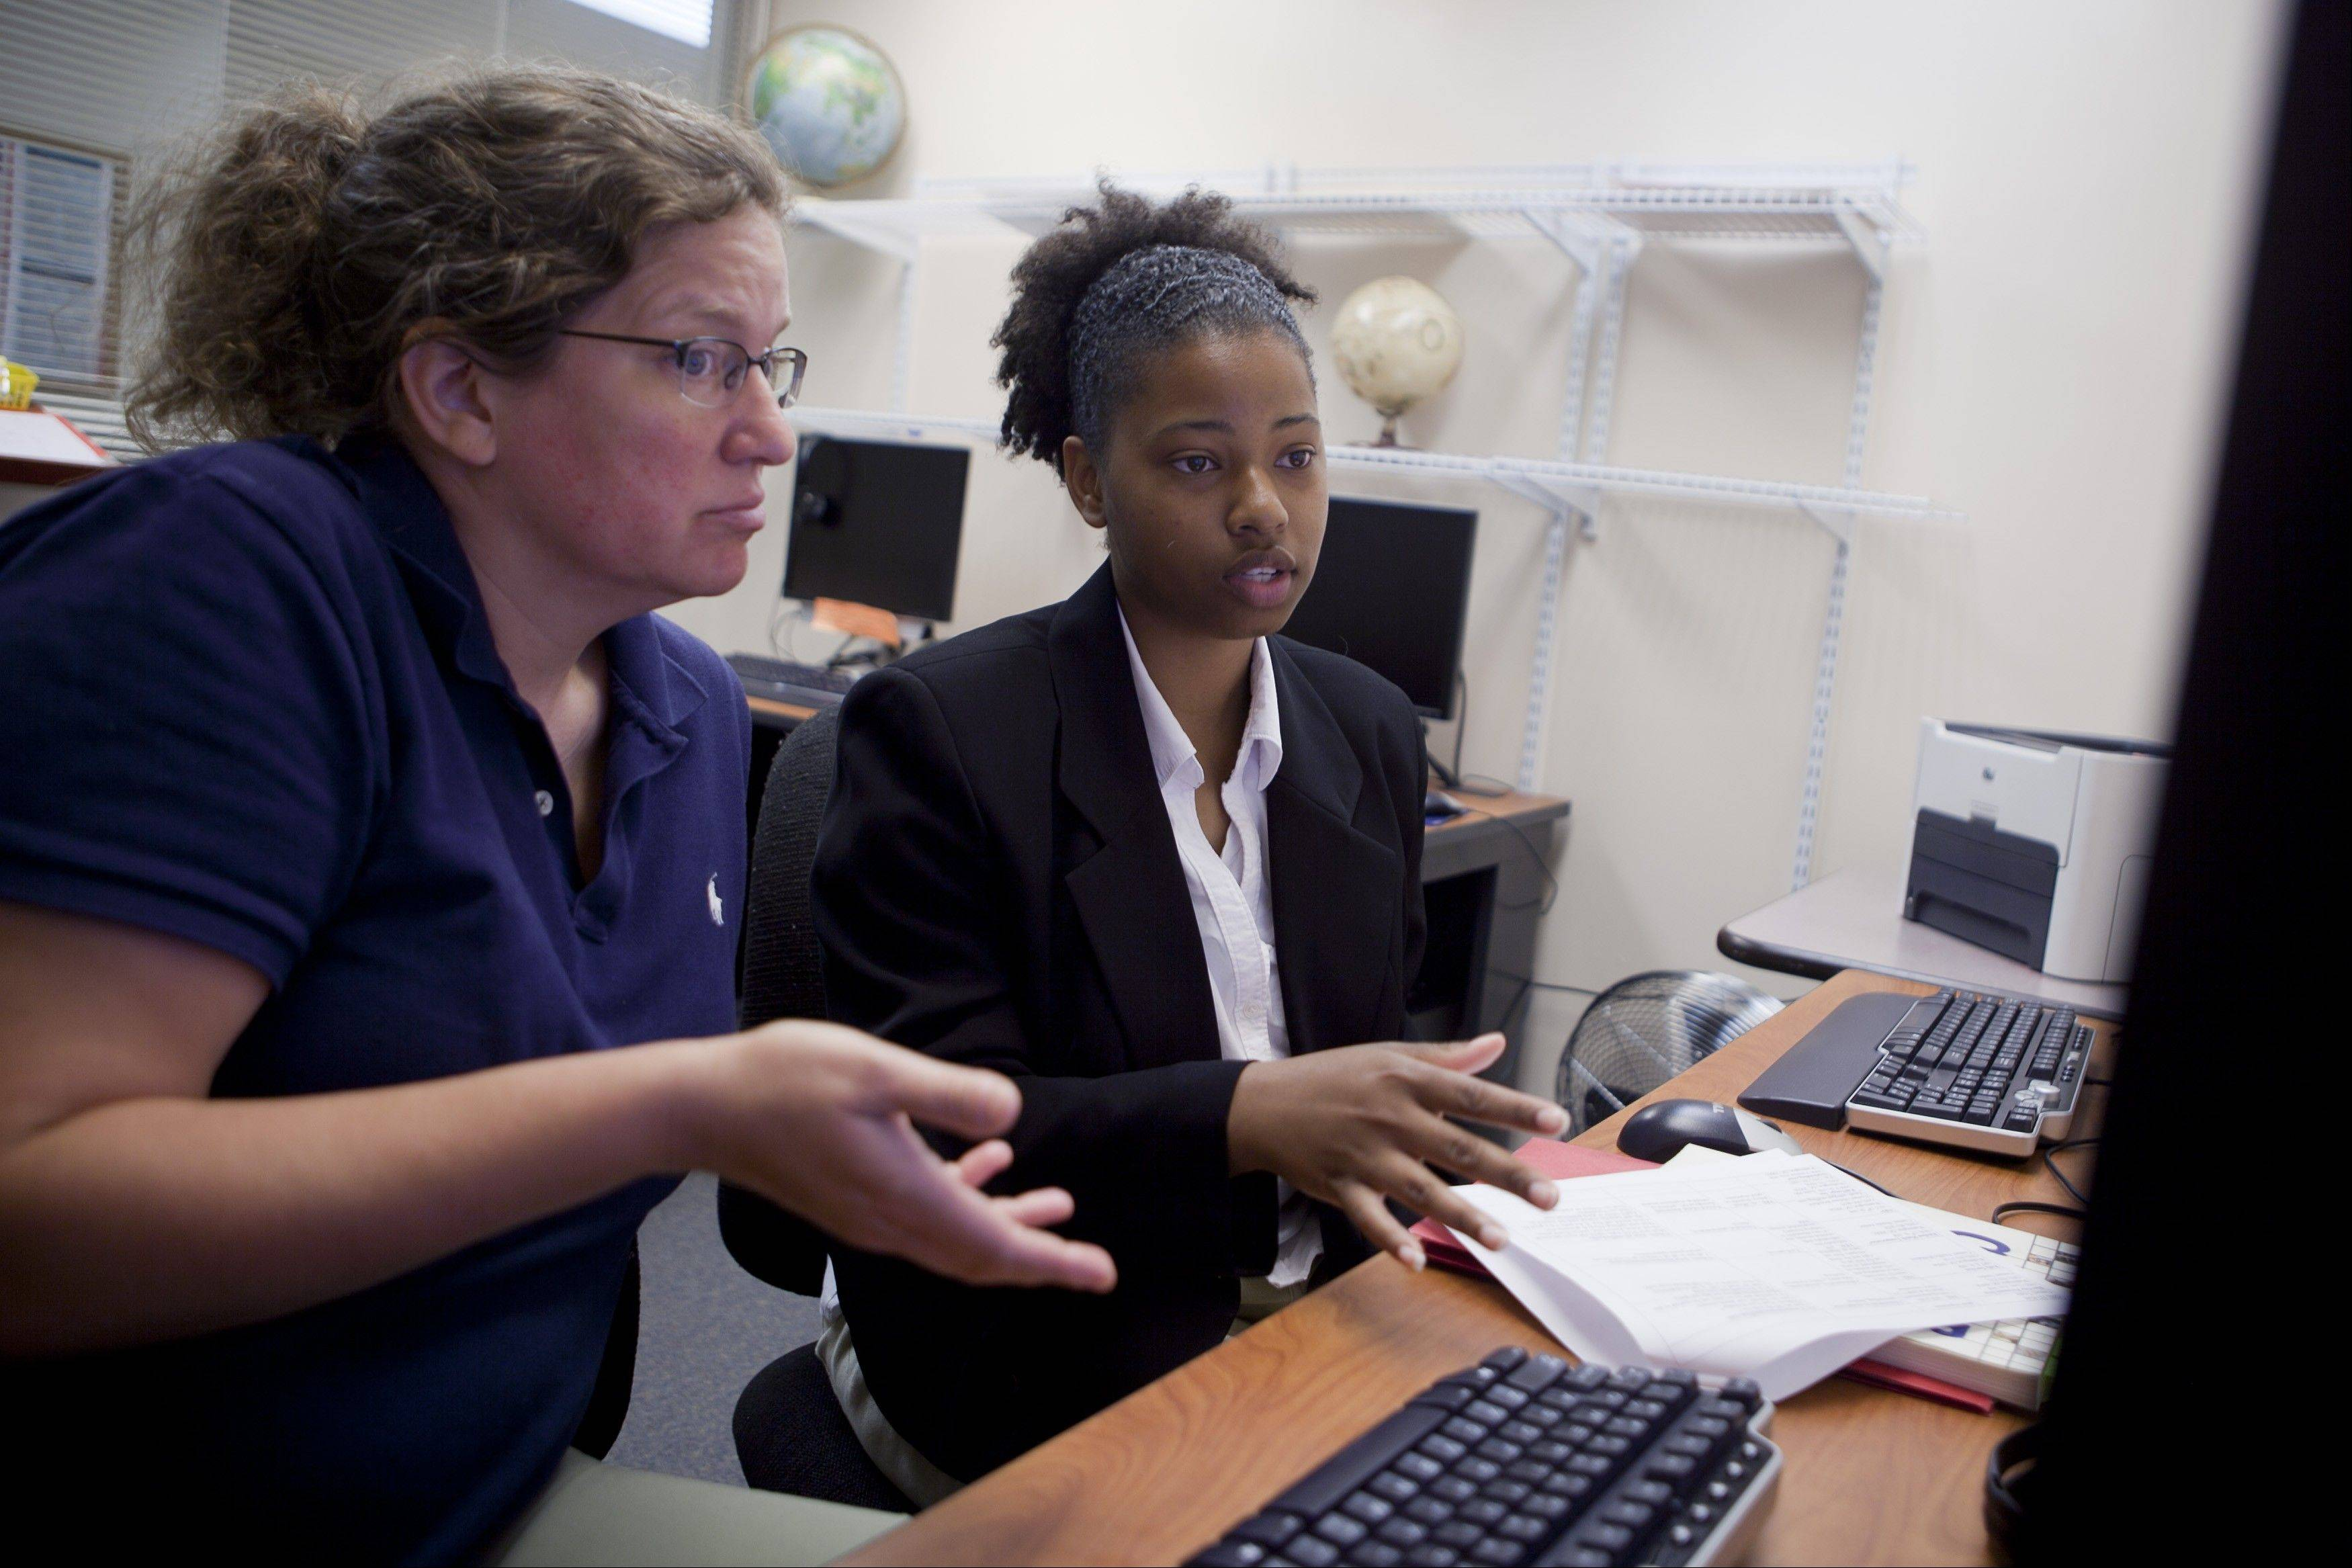 Heidi Gauthier, left, helps jobseeker Jennifer Thomas look at job postings online at the education and employment area of N Street Village community center in Washington, D.C